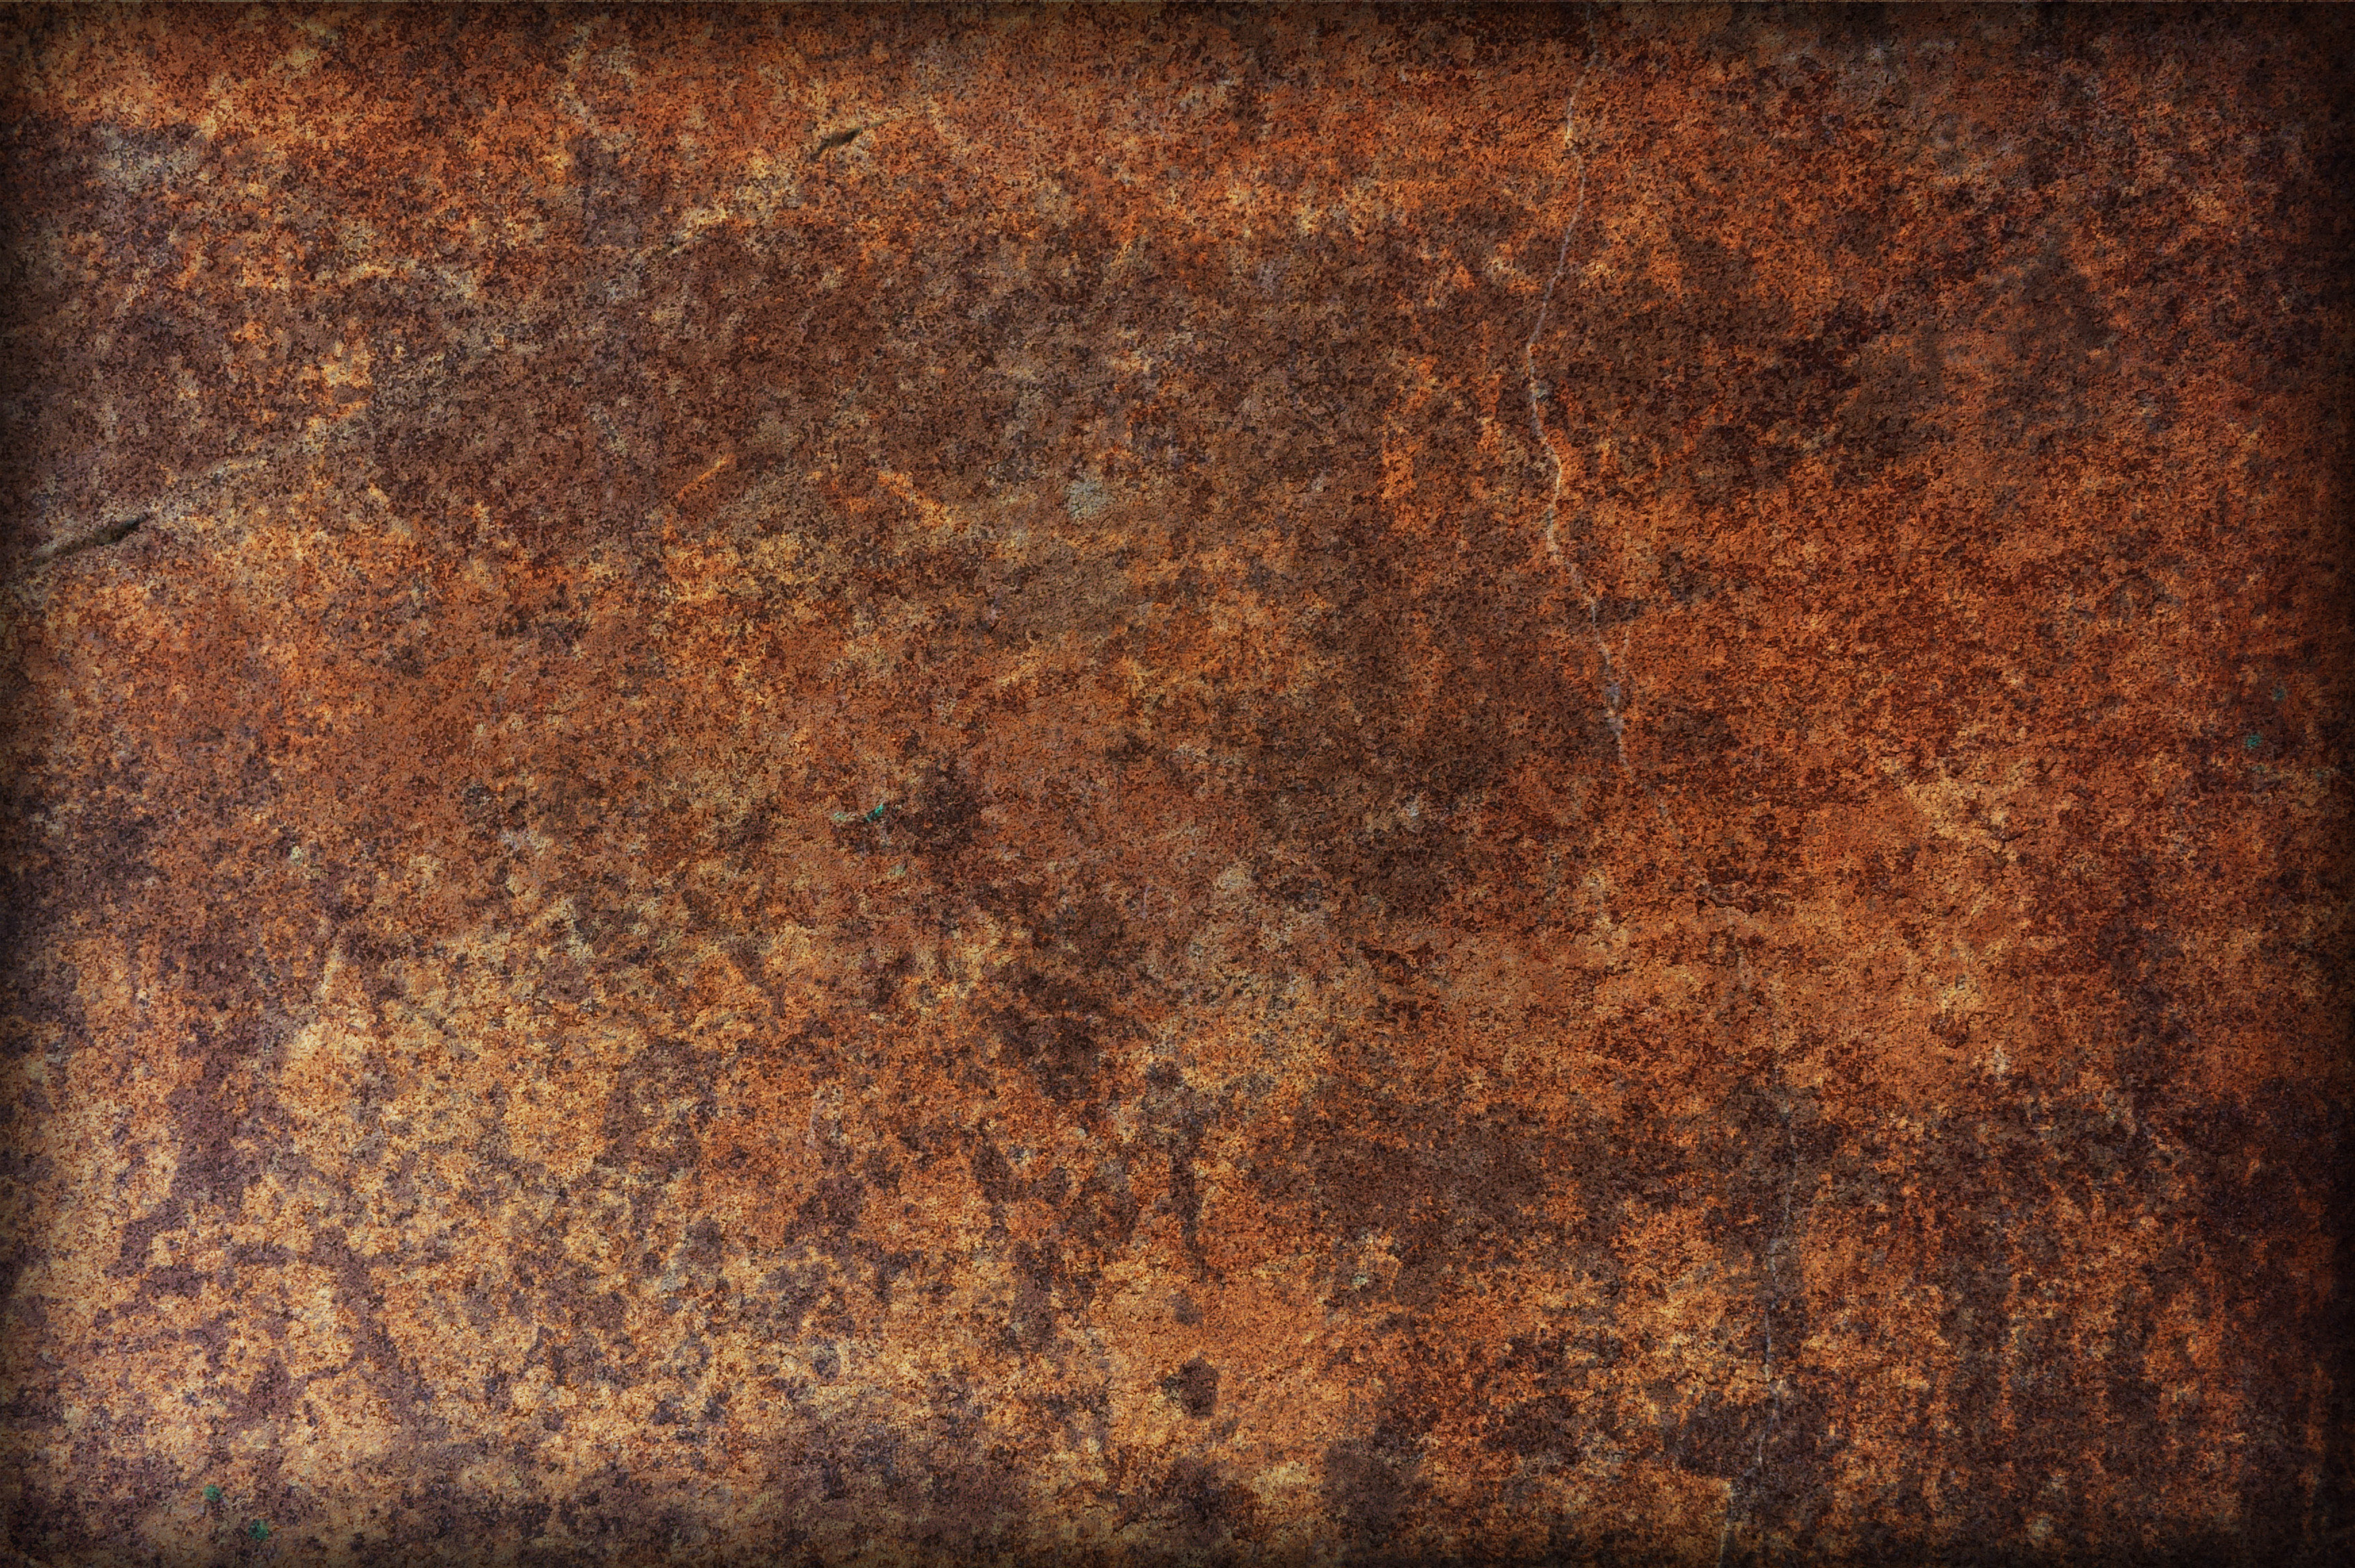 Grunge background photo